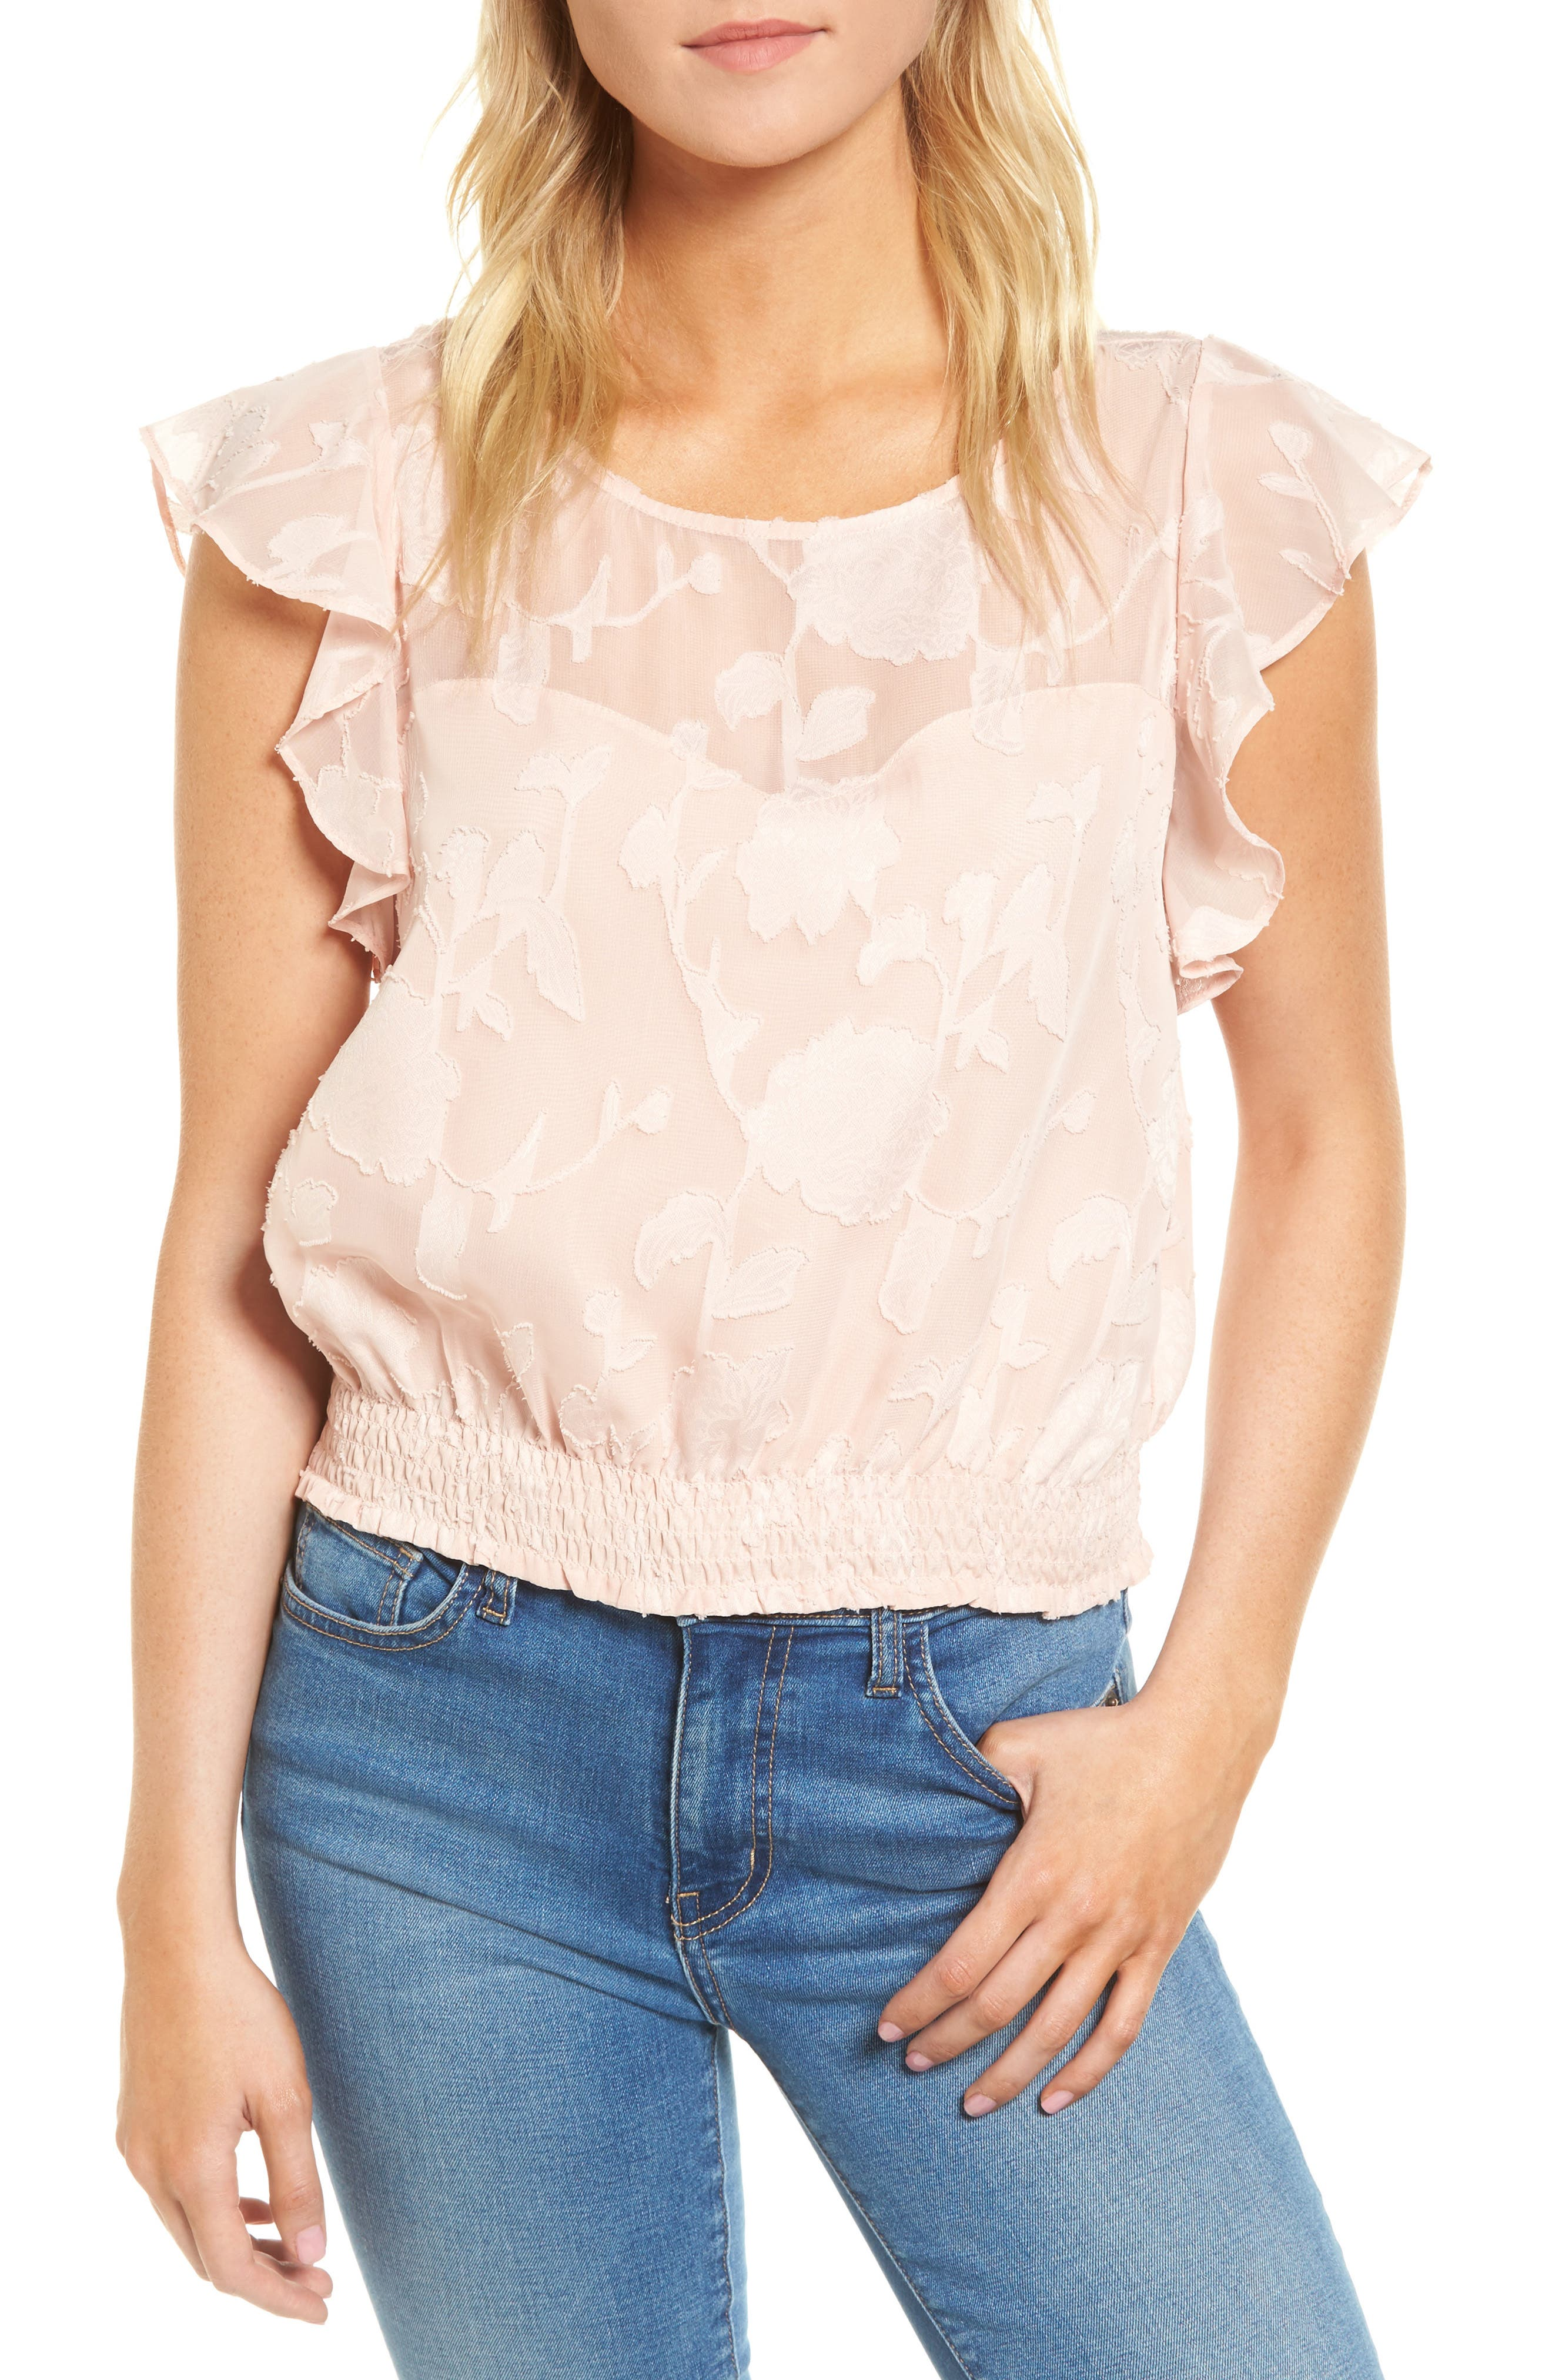 Main Image - cupcakes and cashmere Banyan Floral Burnout Top